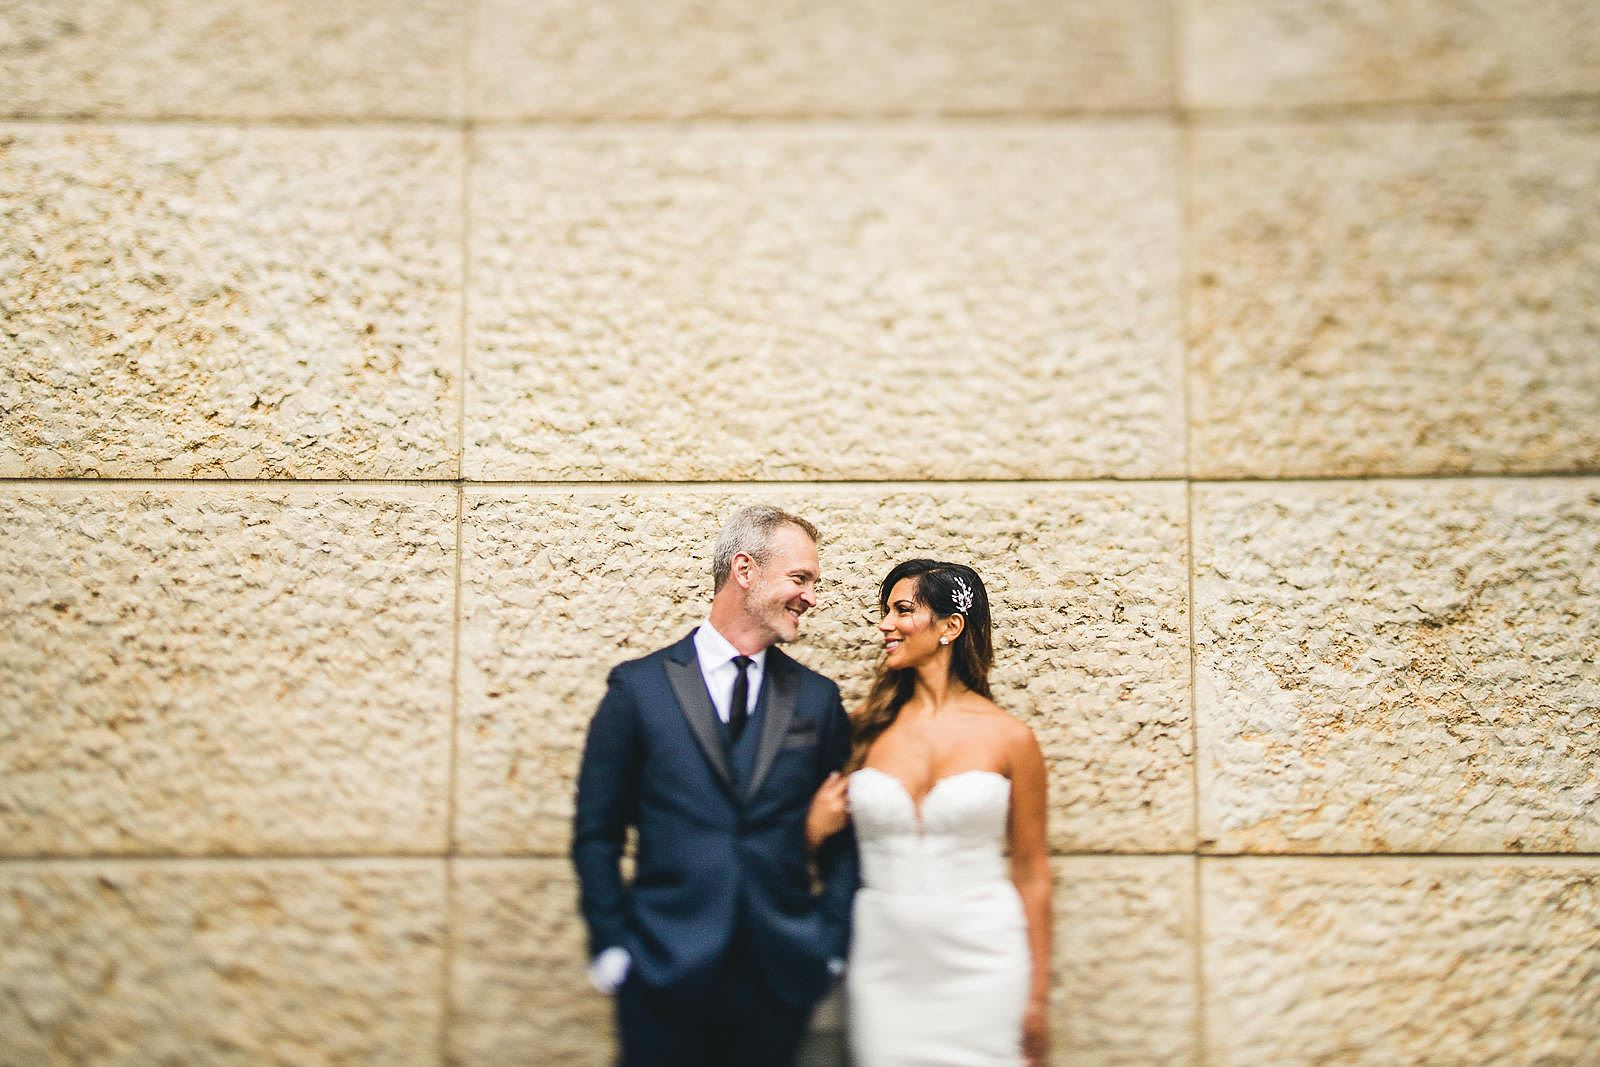 20 best wedding photographer in chicago peter gubenrat - Intercontinental Chicago Hotel Wedding // Lili + Danny